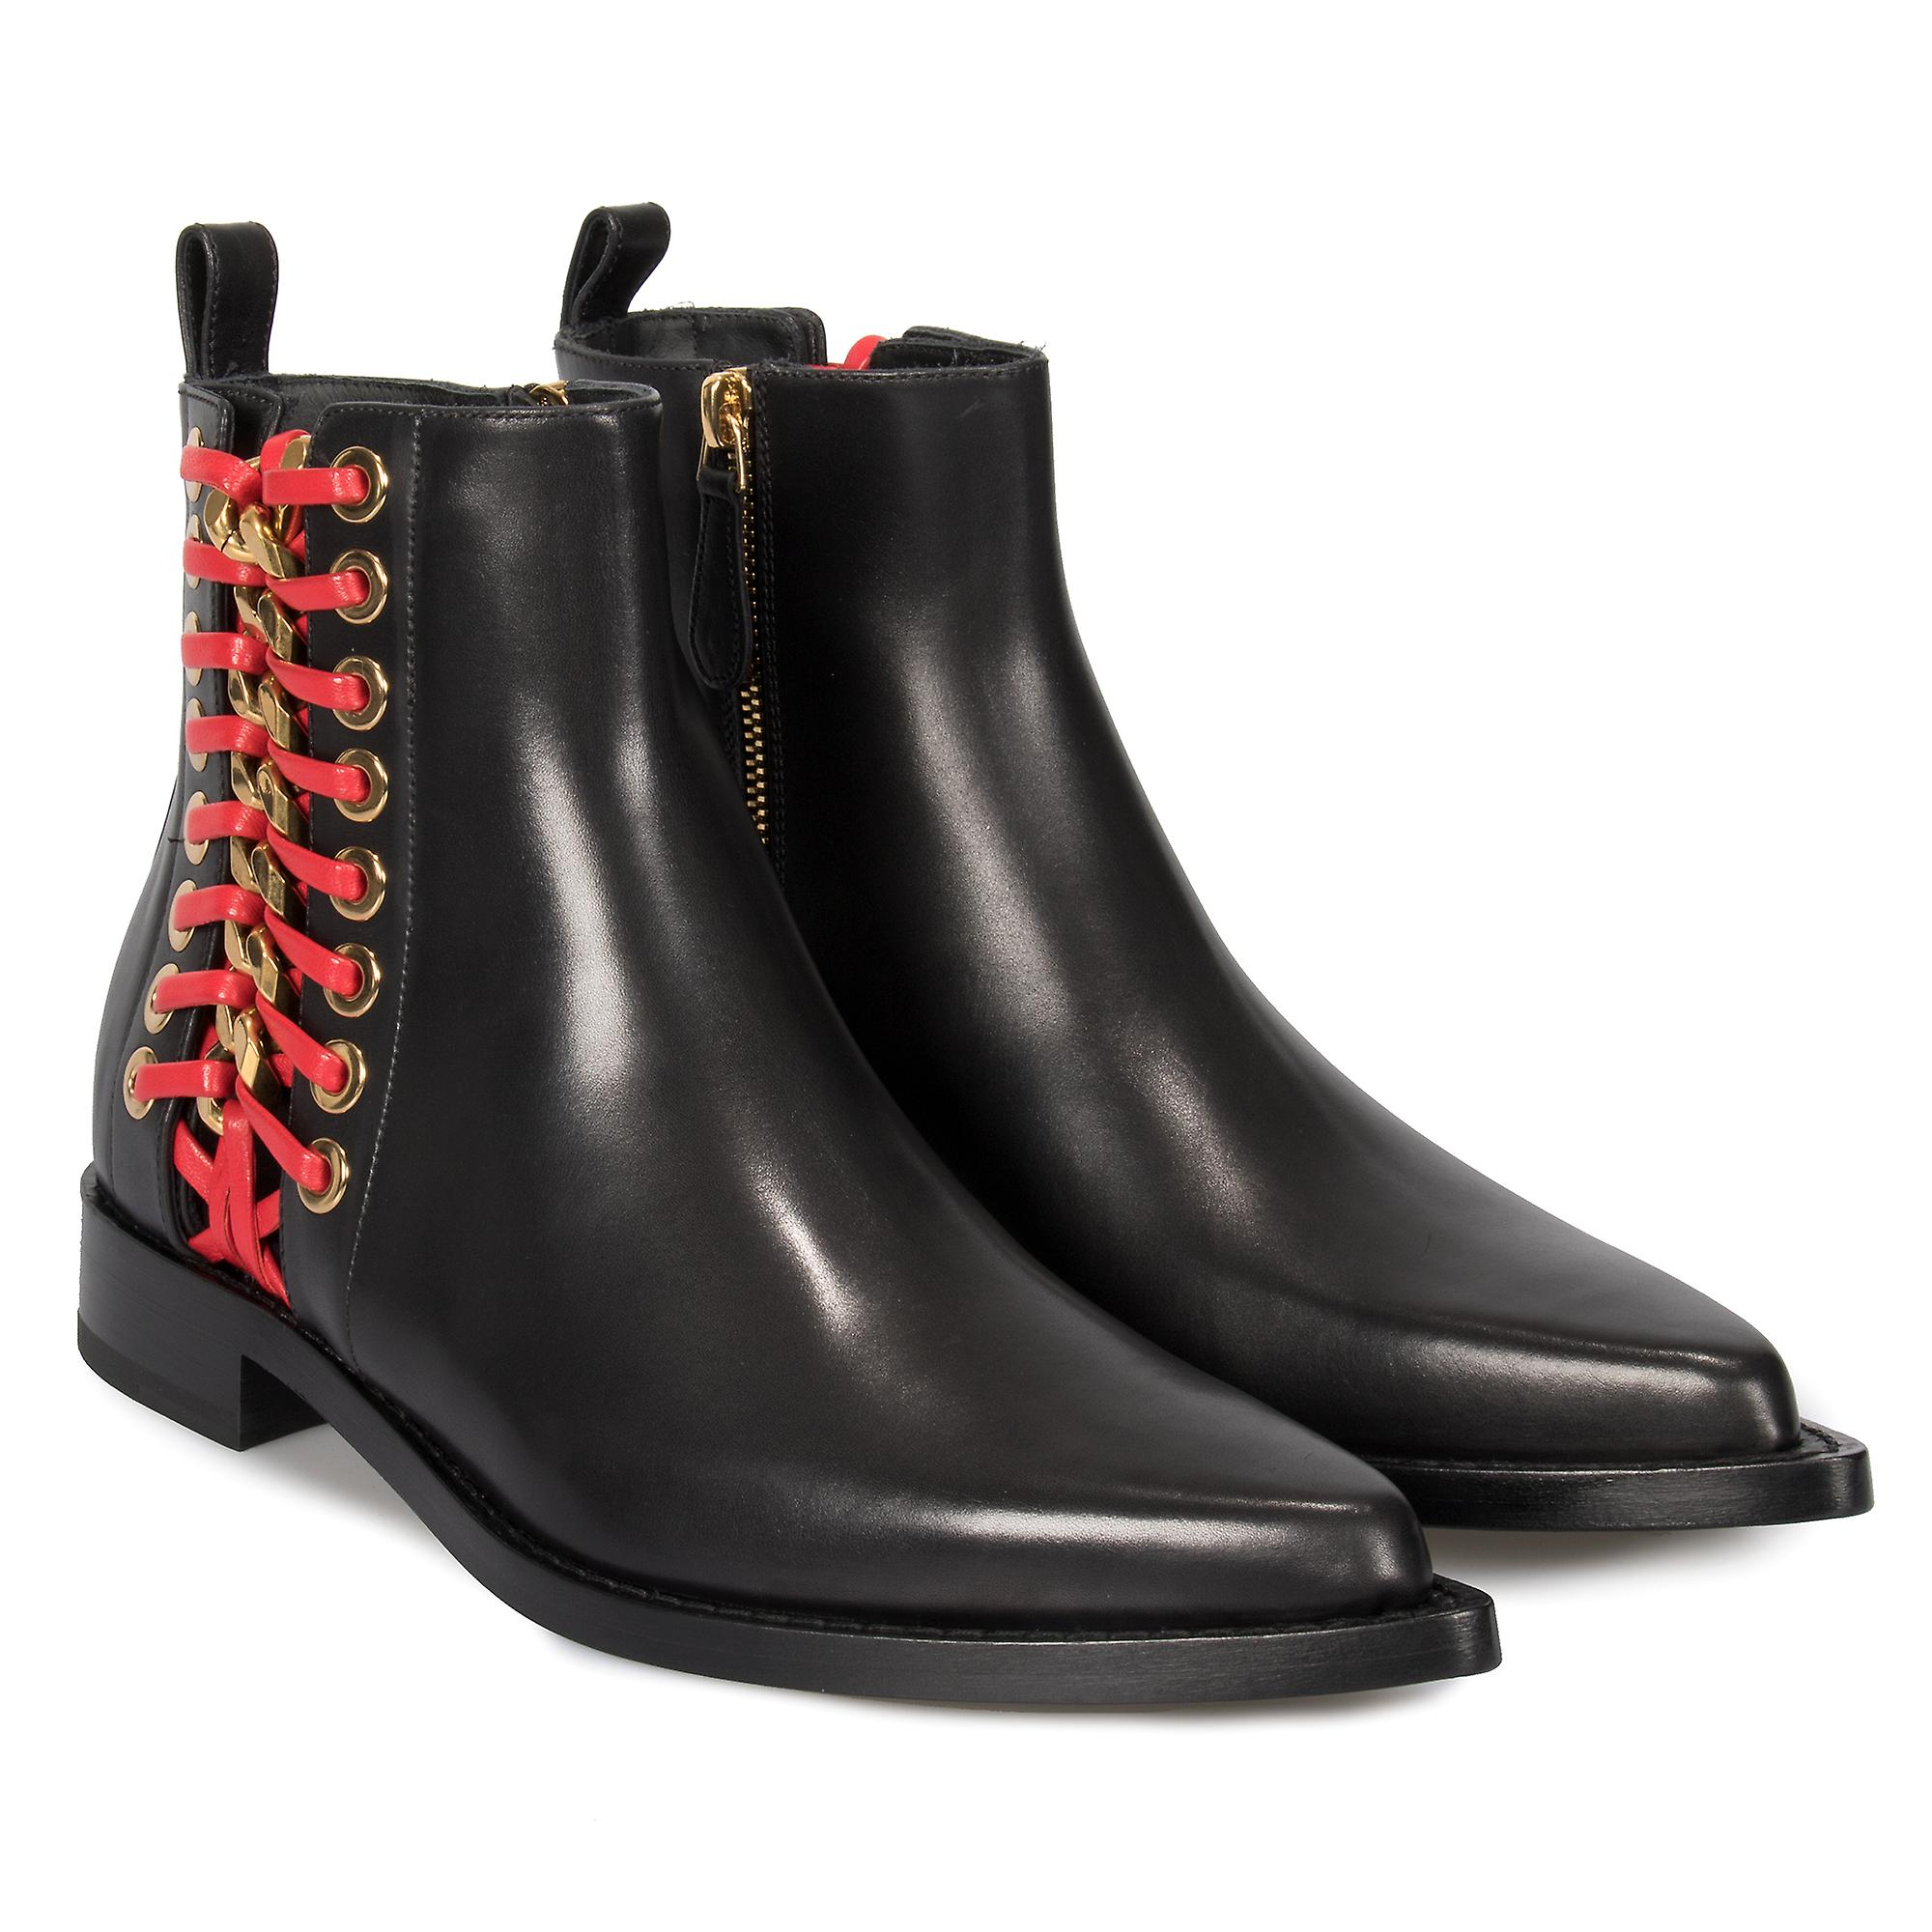 Alexander McQueen Braided Chain Leather Chelsea Boots